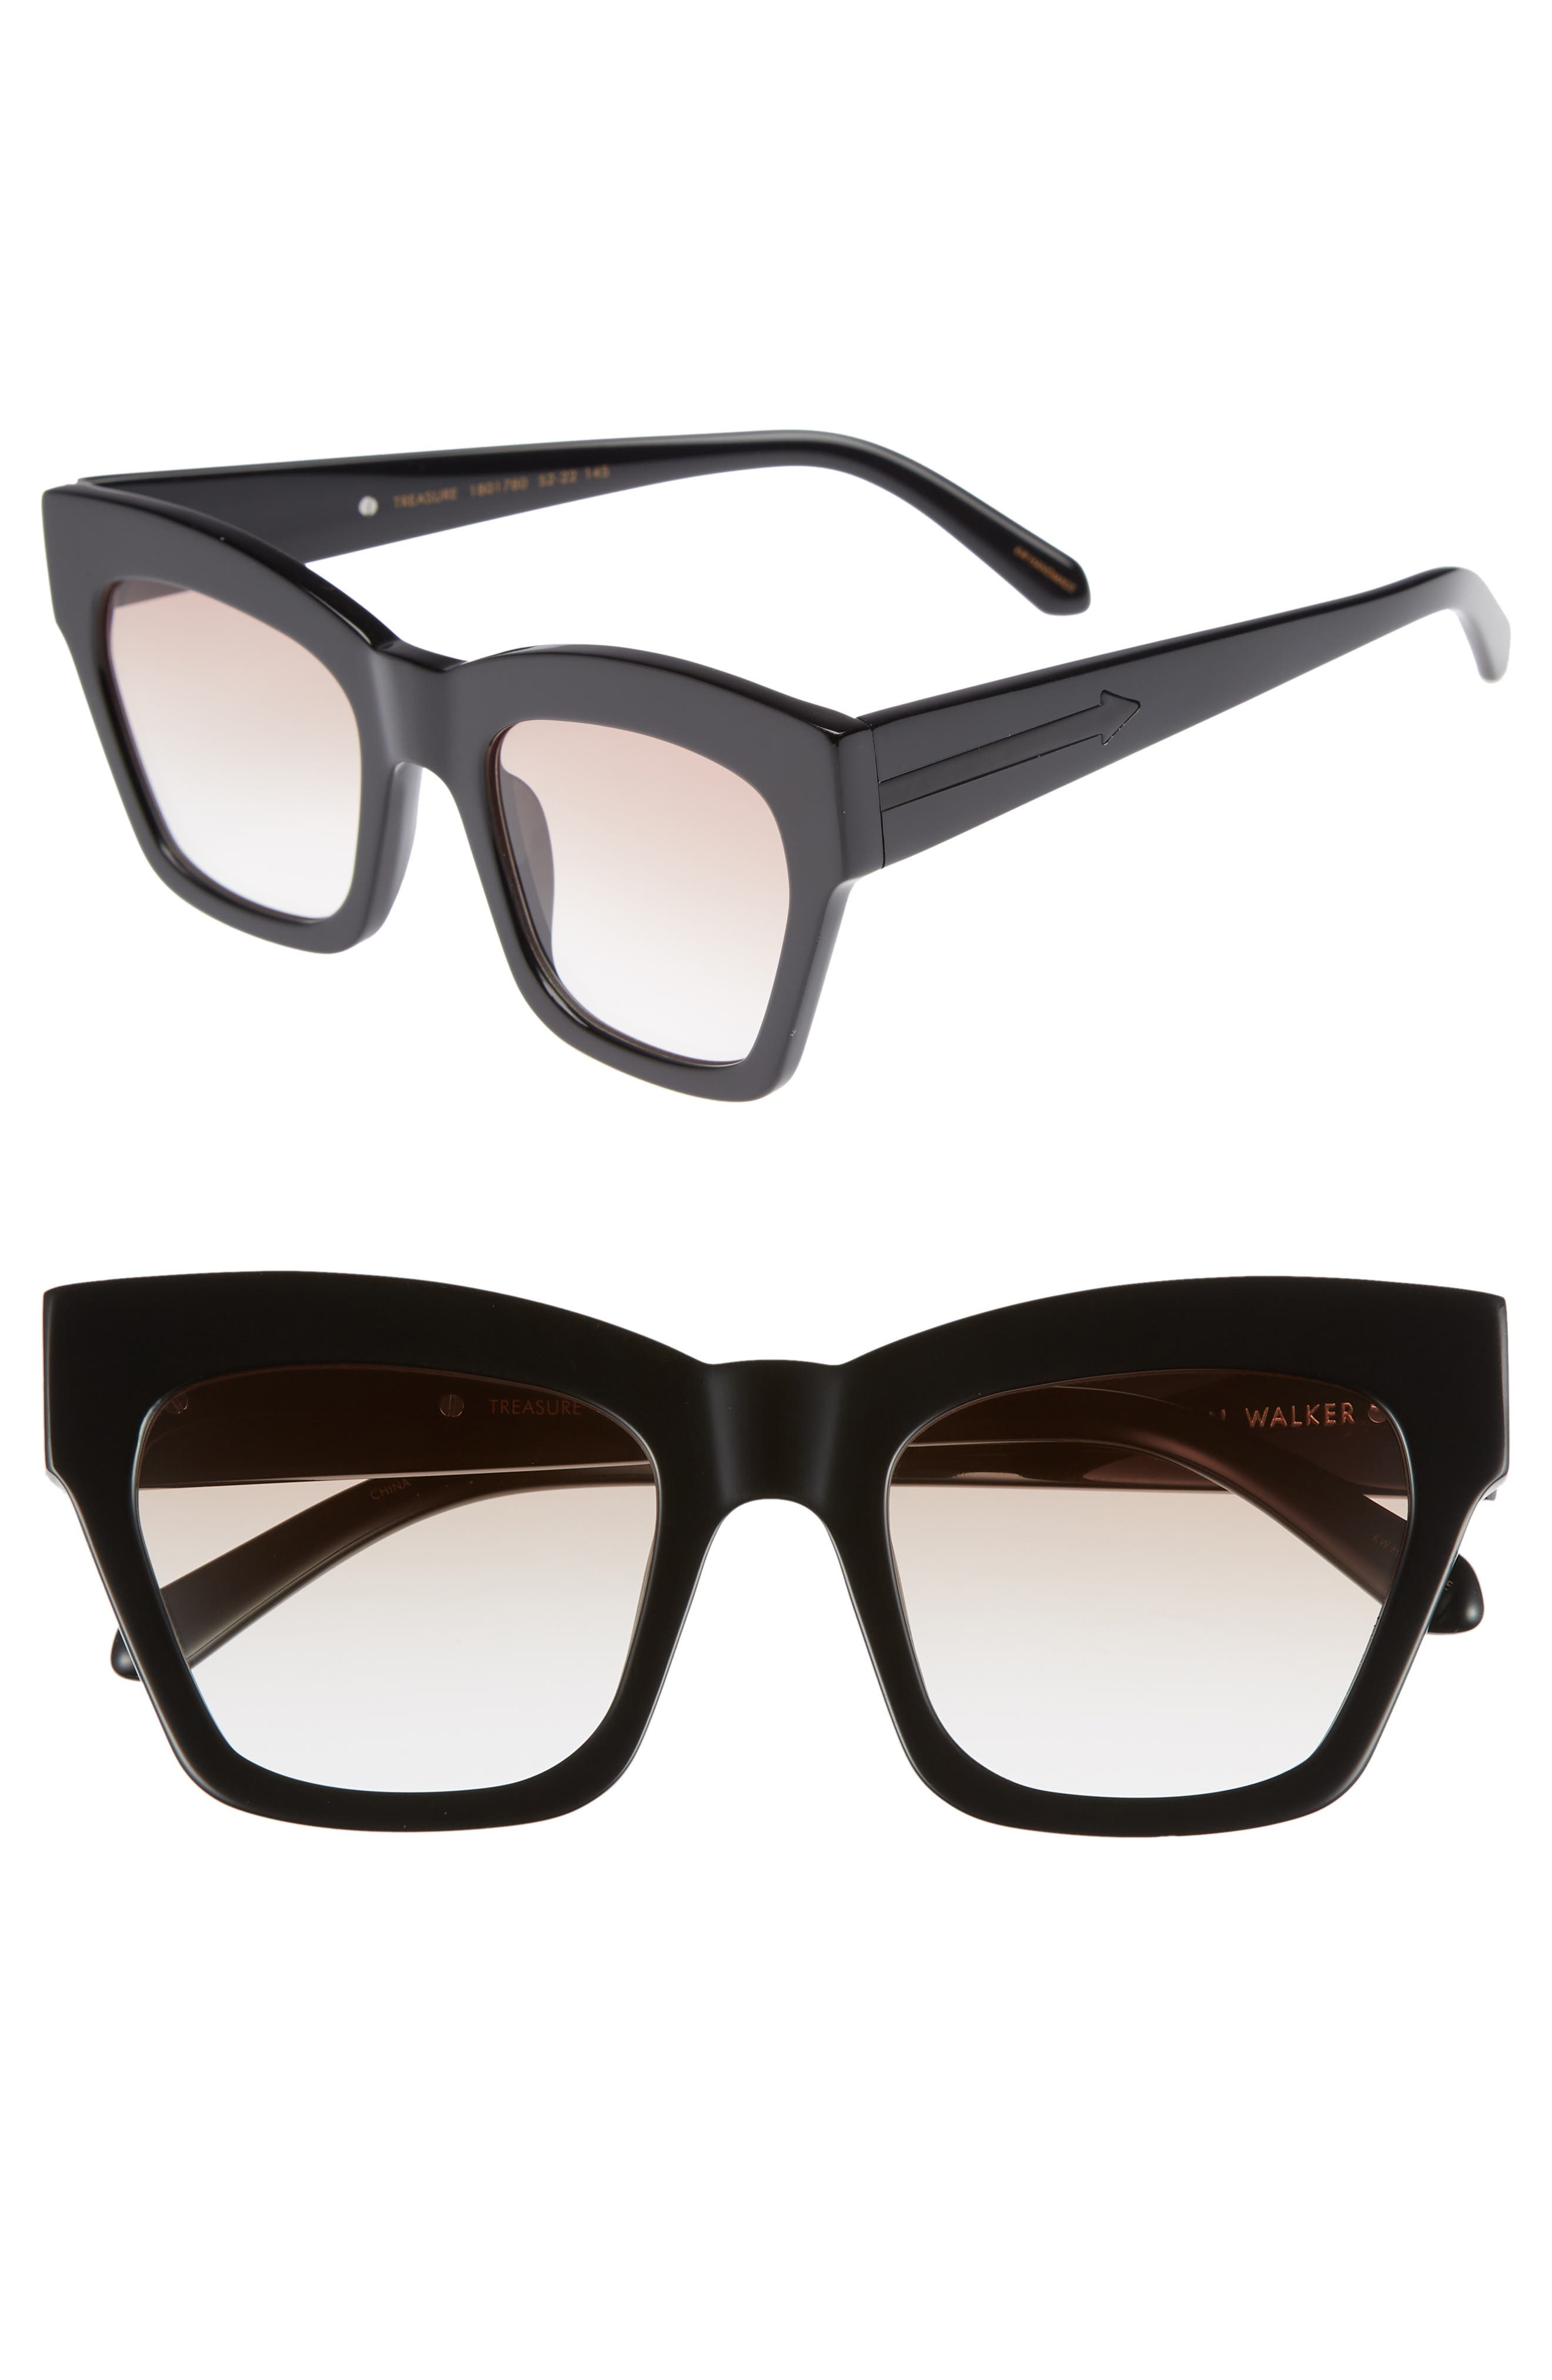 Treasure 52mm Cat Eye Sunglasses,                         Main,                         color, SHINY BLACK/ BROWN